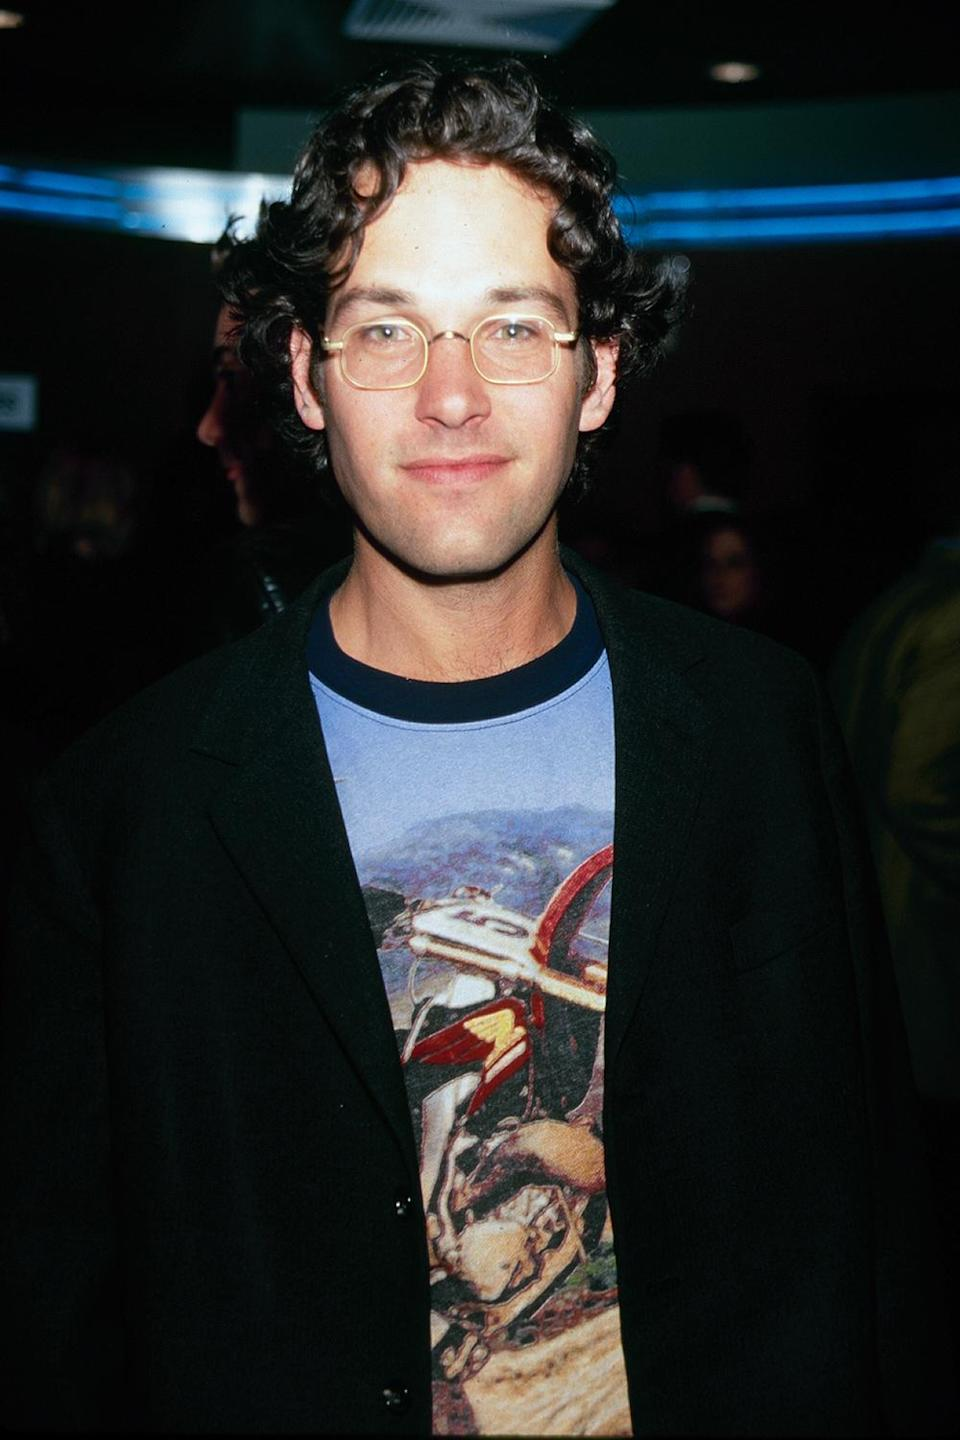 <p>Even glasses wouldn't make it easier to tell when this photo was taken (it was 2000). </p>